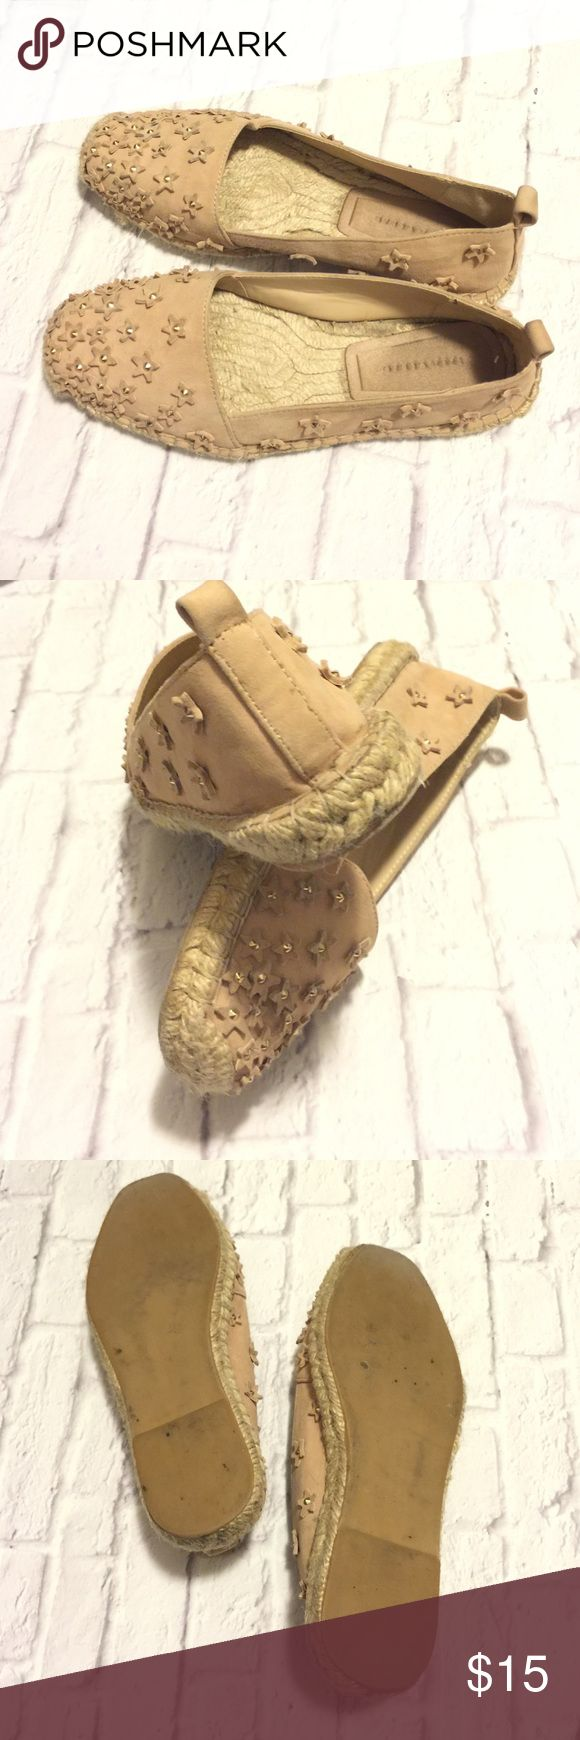 Gently worn ZARA flats Pretty blush, nude espadrille-style flats need a new home.  Hardly worn, with star and gold embellishments. Zara Shoes Espadrilles